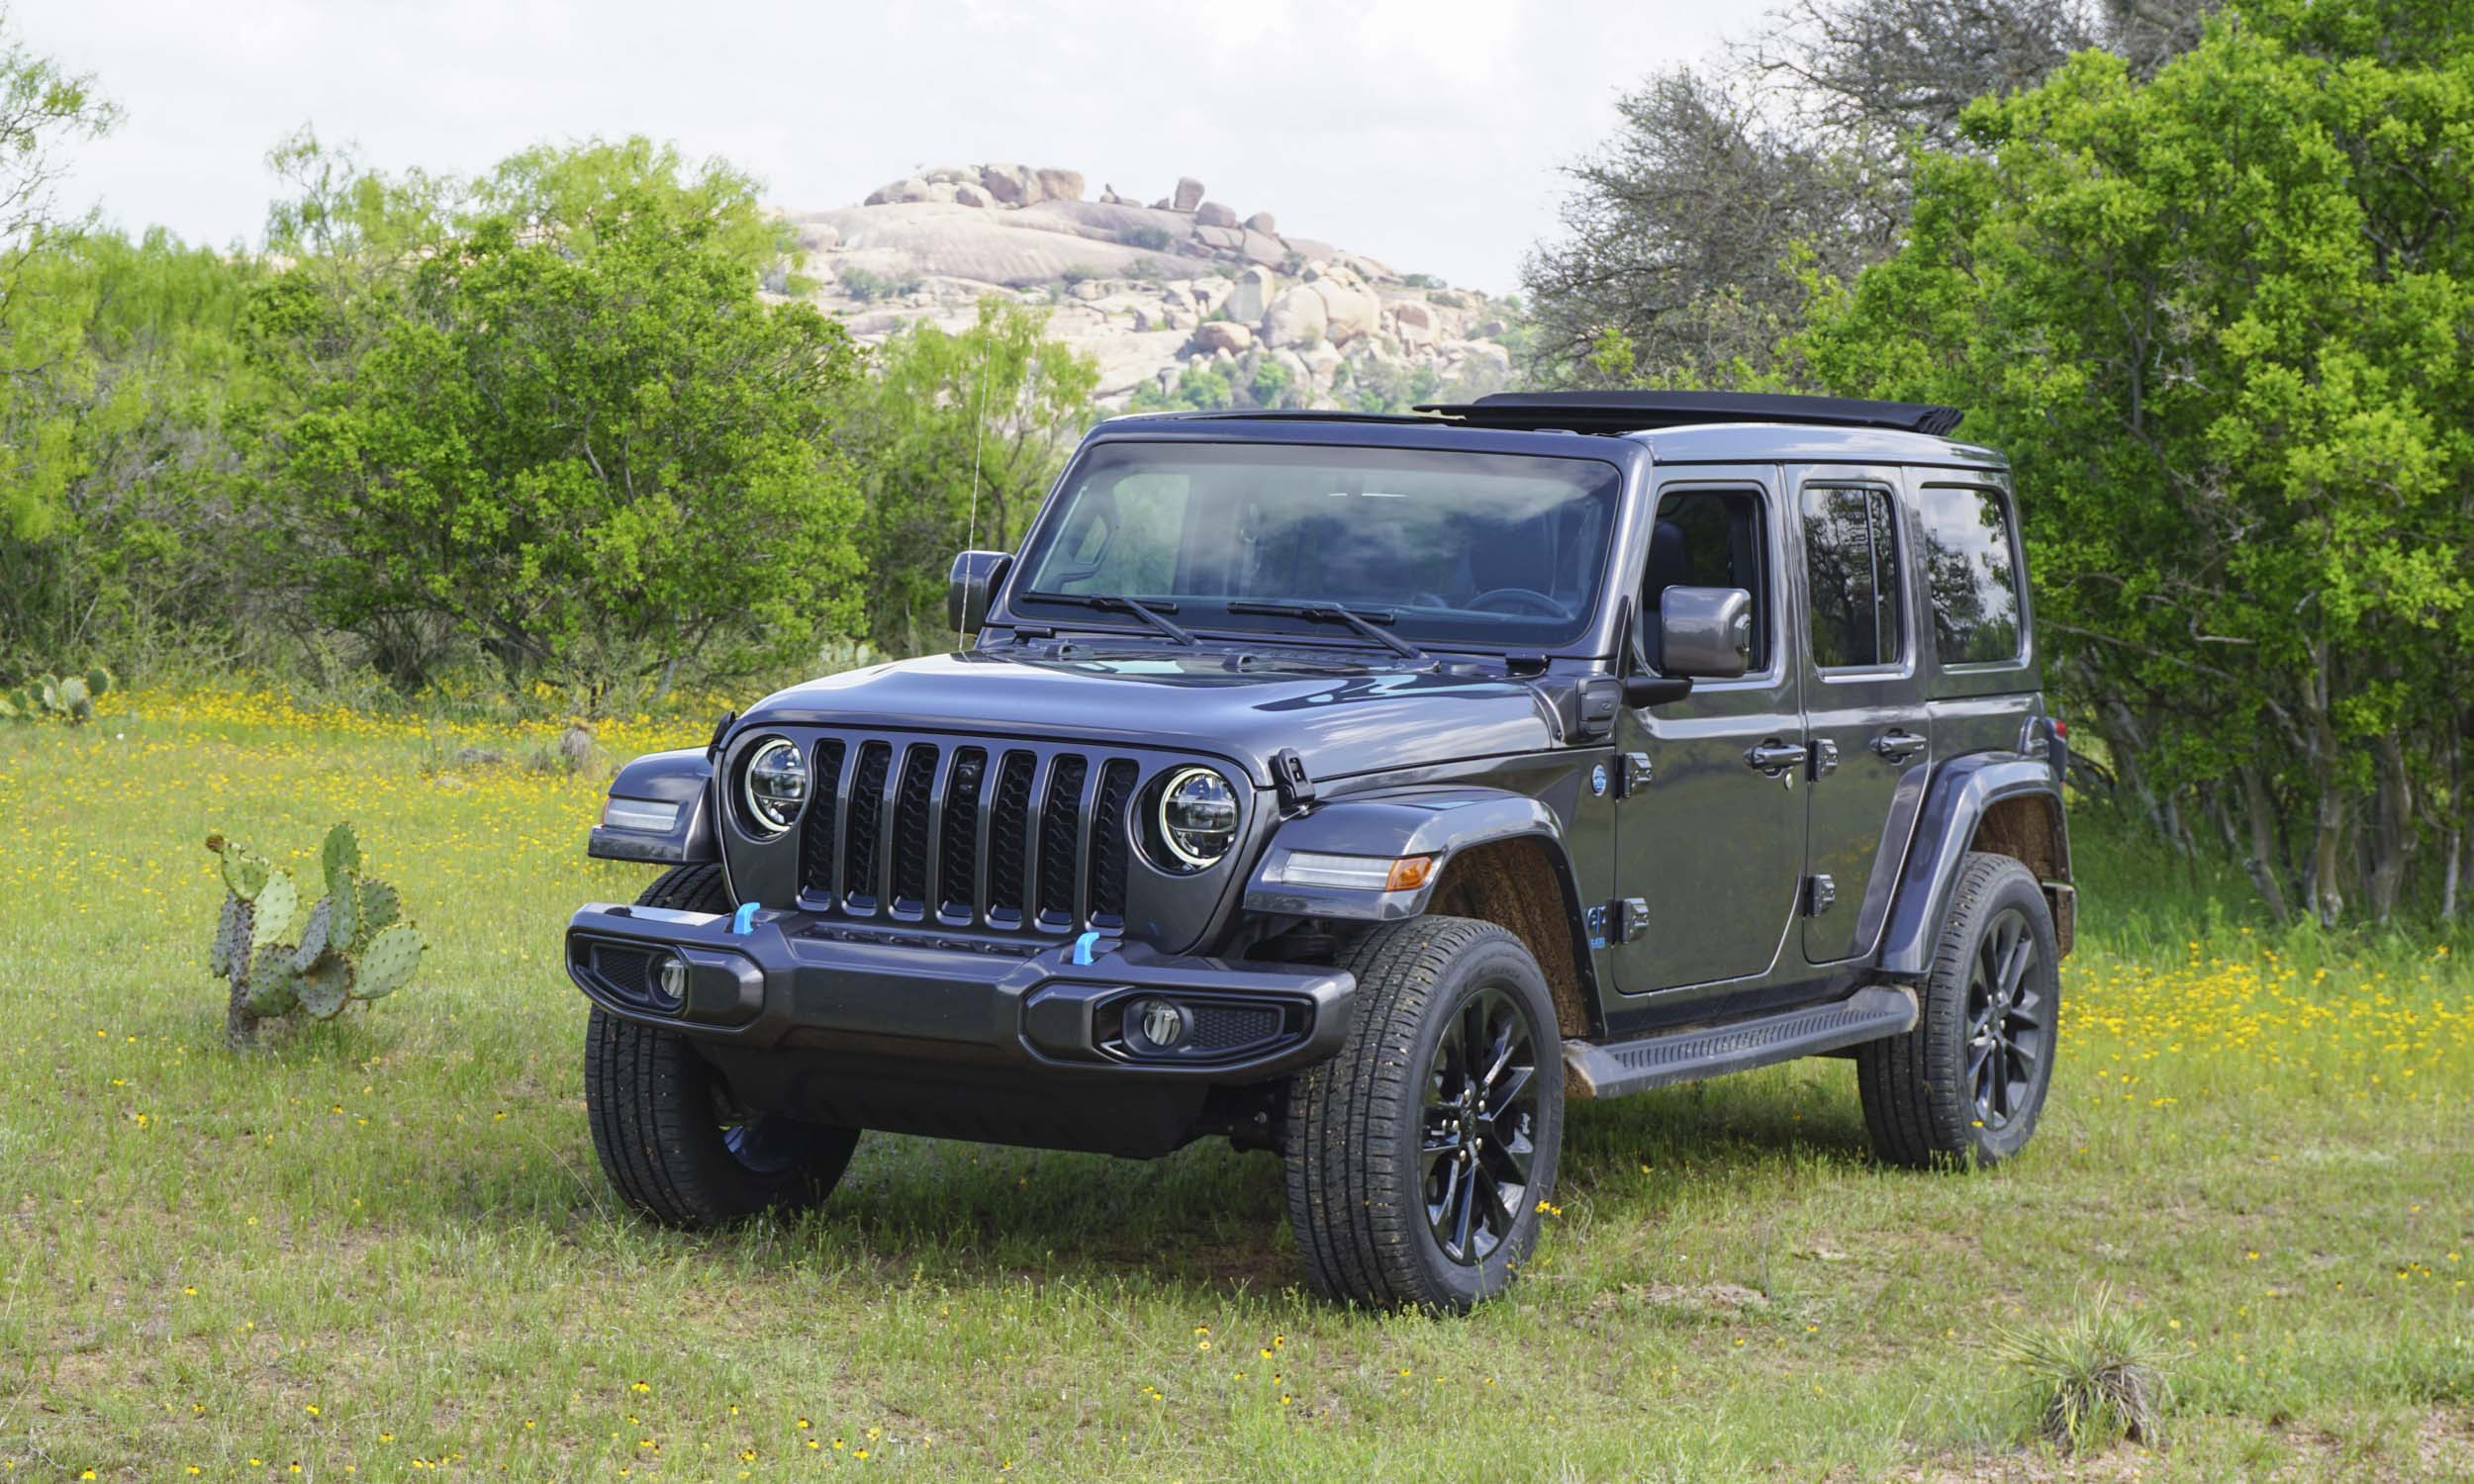 2021 Jeep Wrangler 4xe: First Drive Review